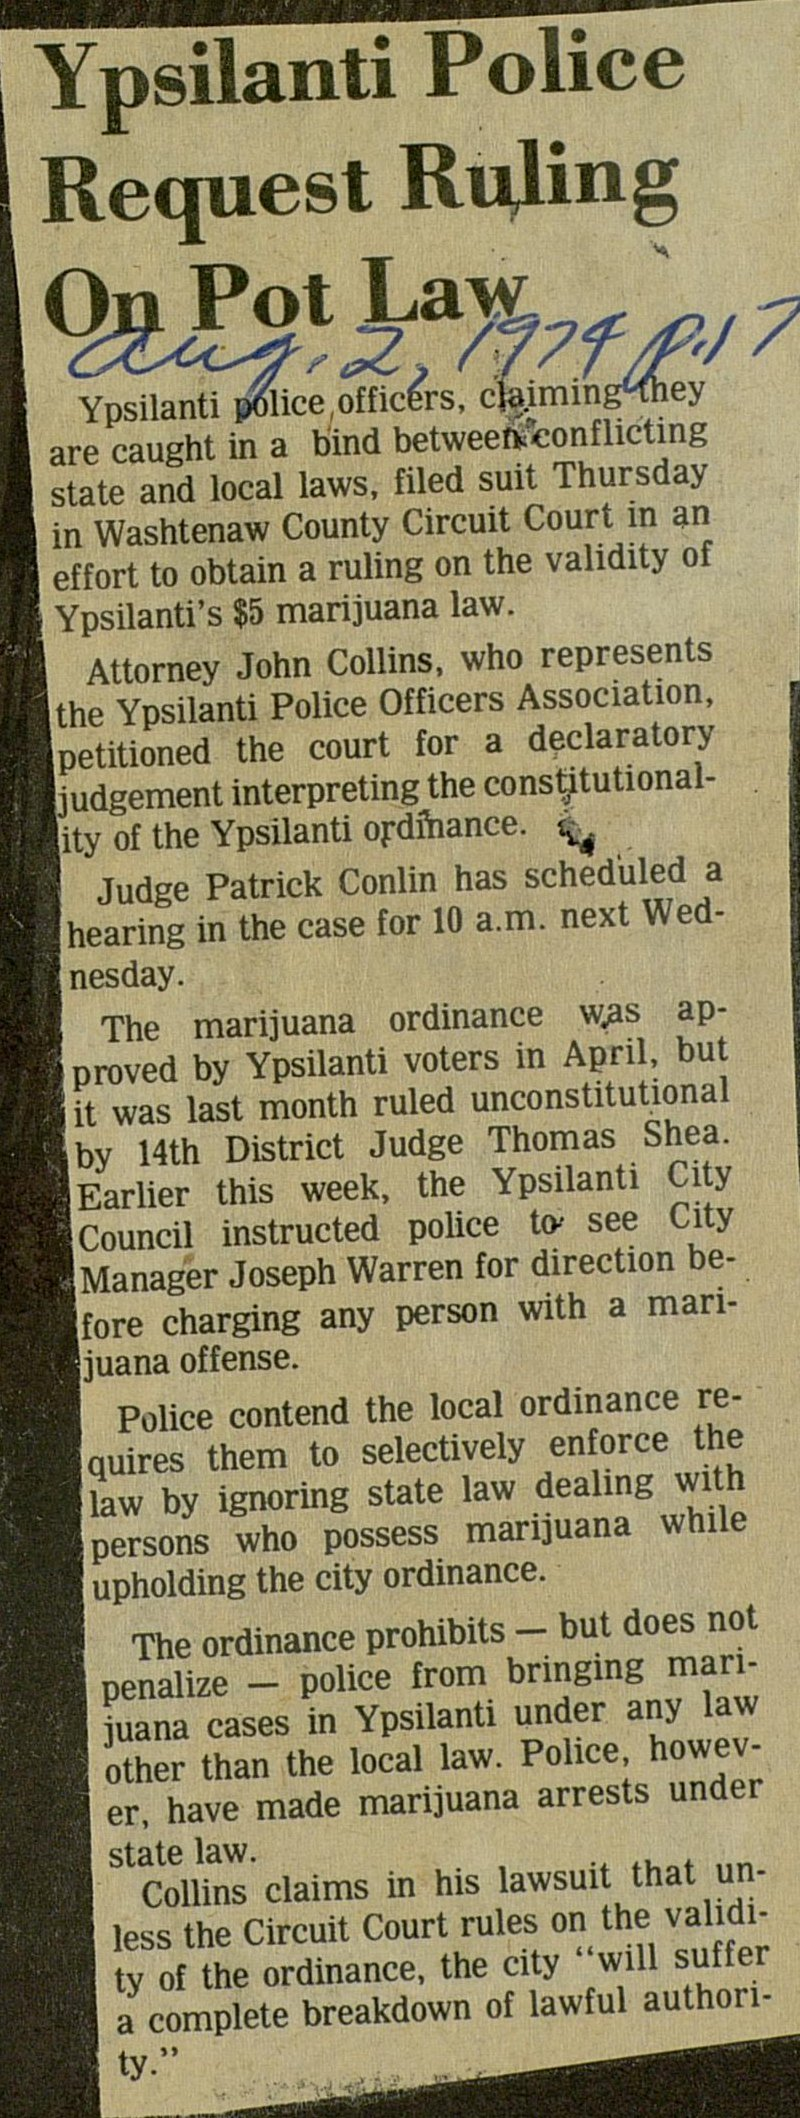 Ypsilanti Police Request Ruling On Pot Law image